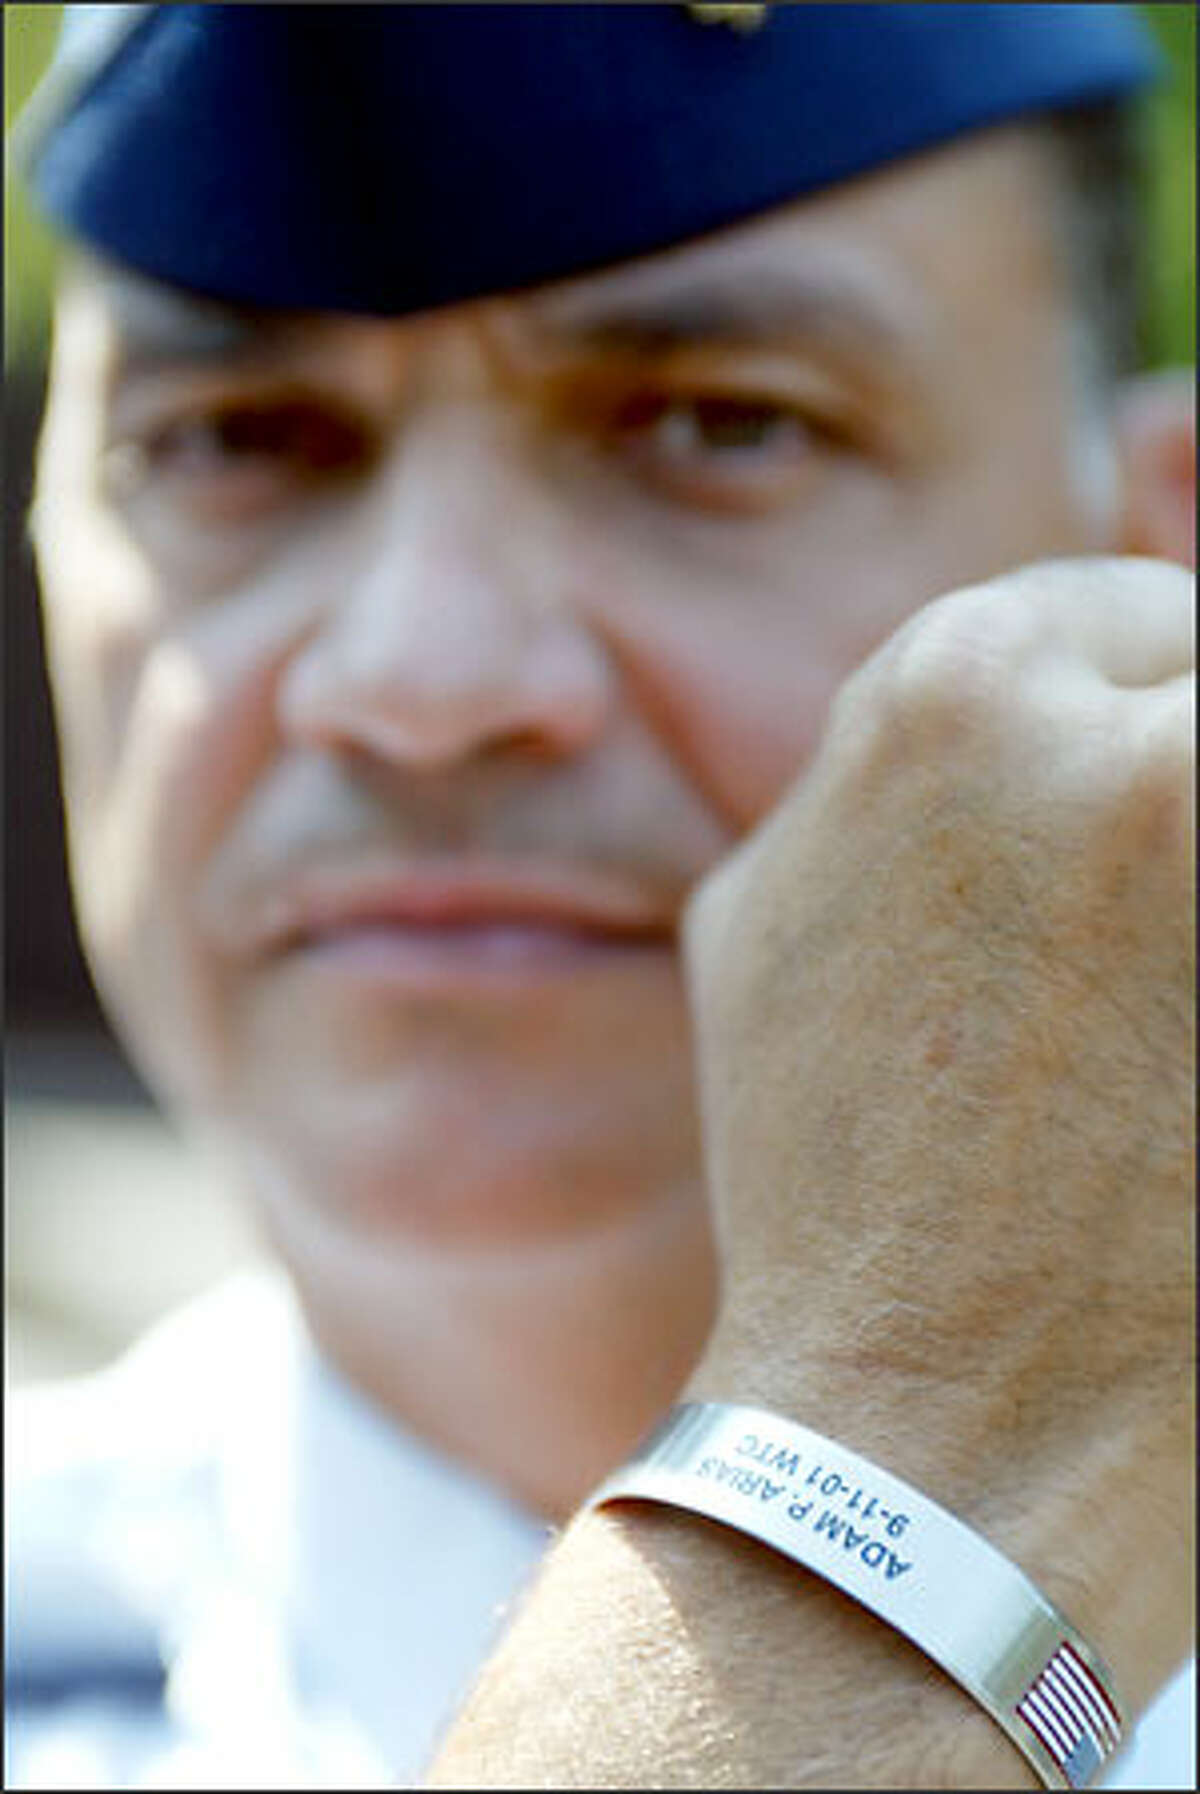 Maj. Don Arias was on the phone on 79/11 with his brother, Adam Arias, who was killed in the attack.